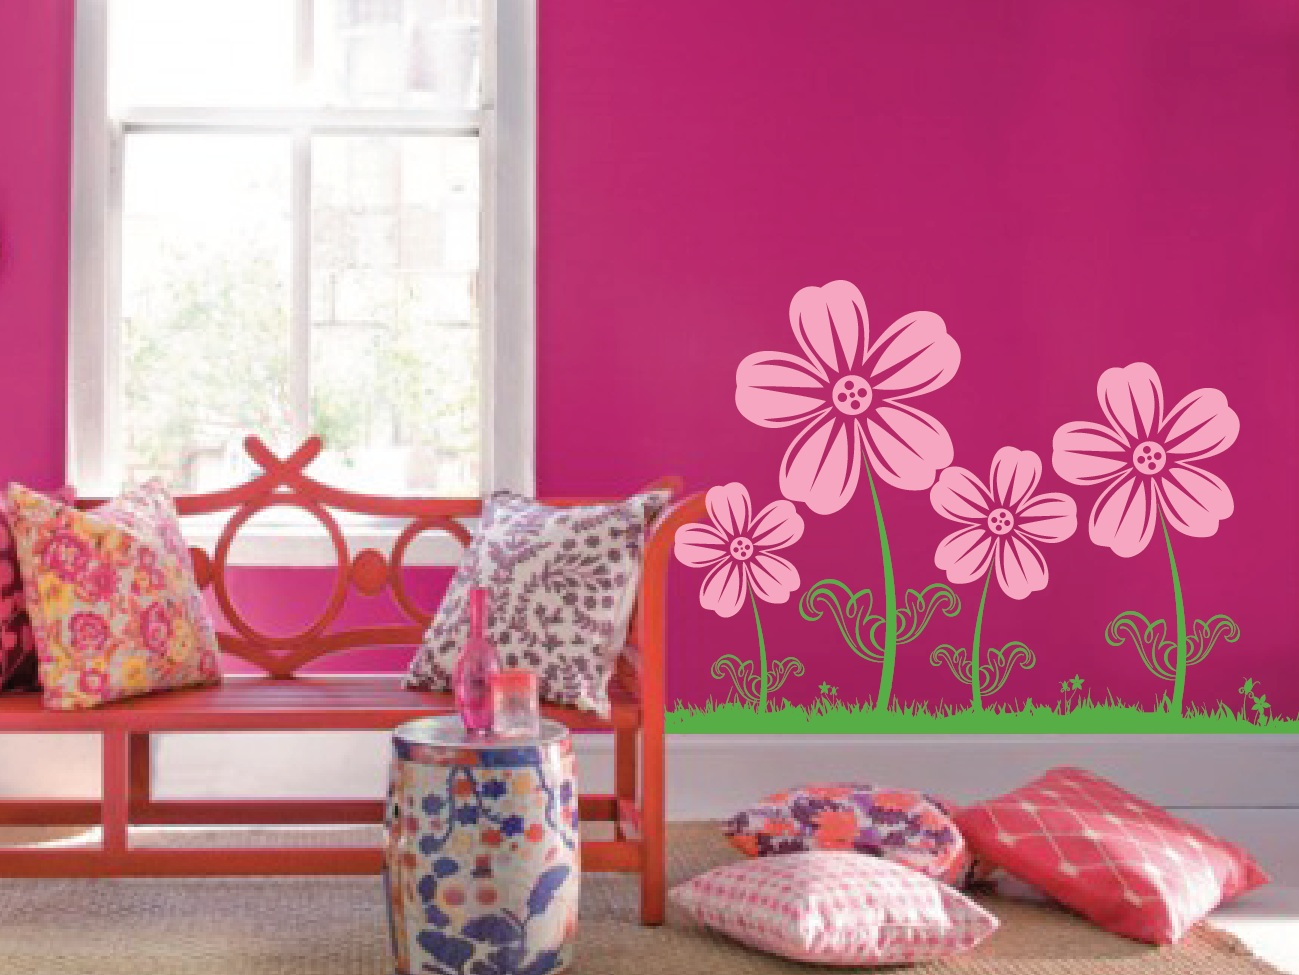 flower-floral-wall-decal-for-girls-room-with-grass-nursery-1123.jpg